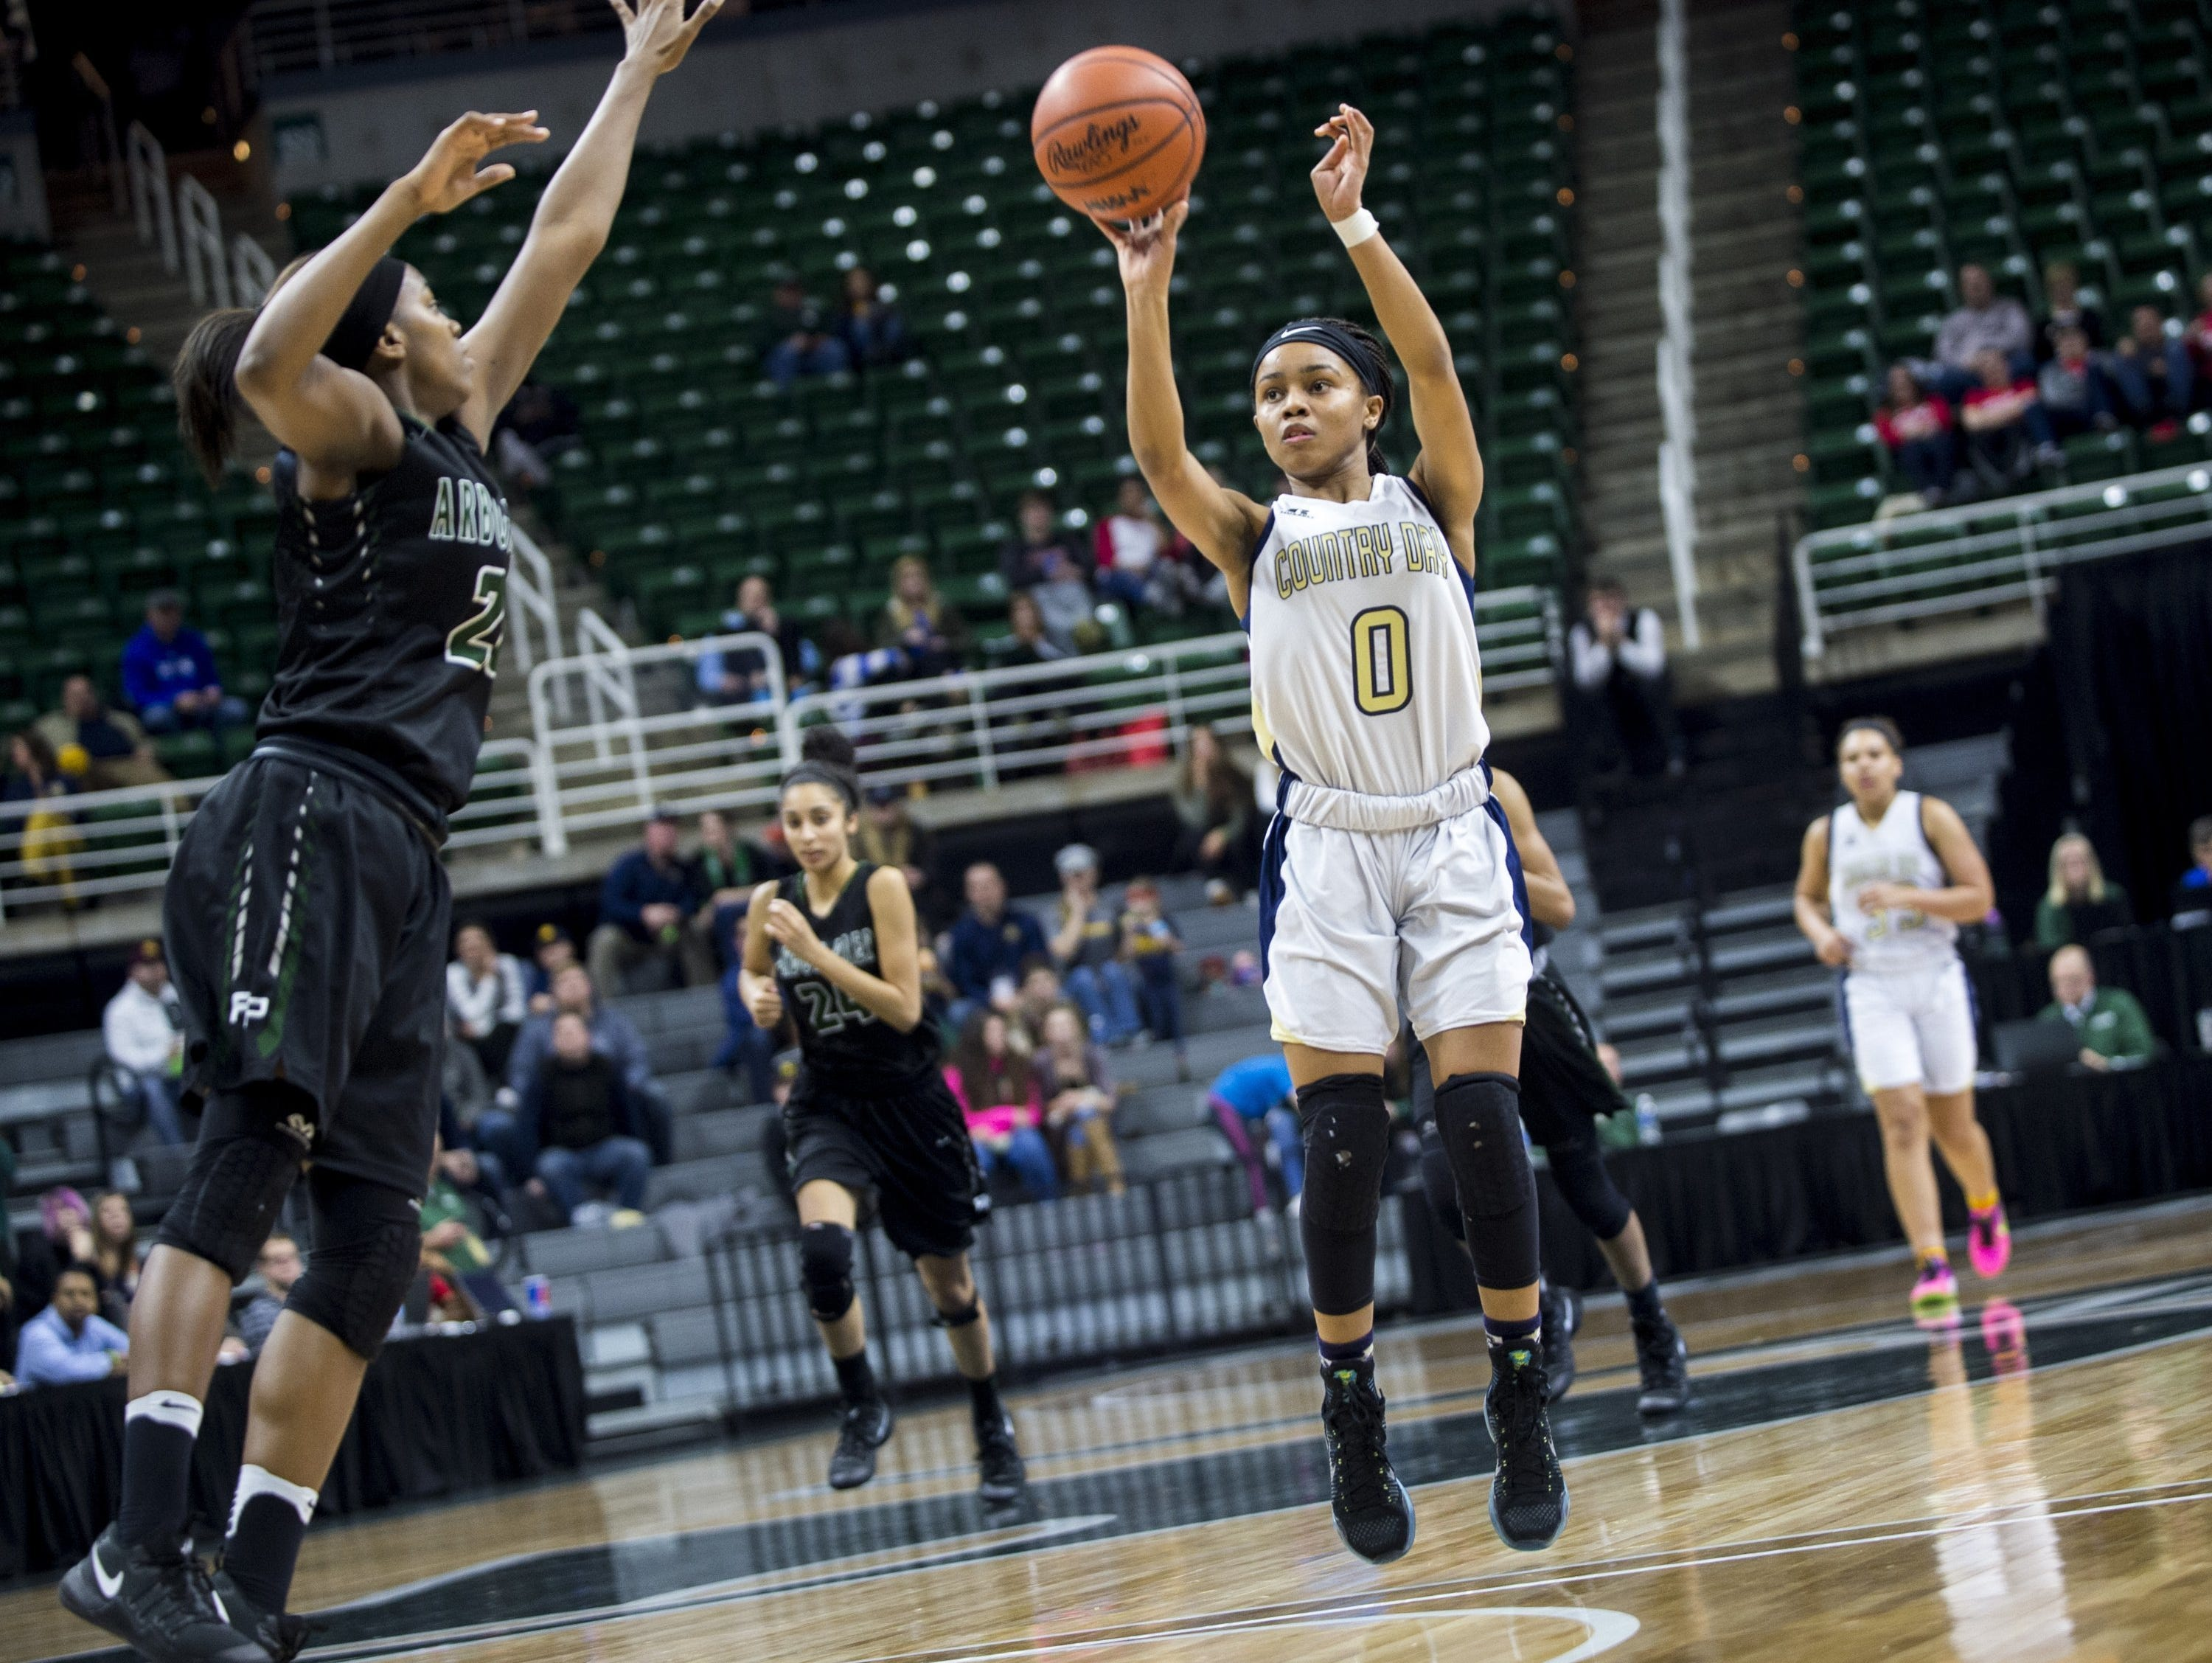 Birmingham Detroit Country Day's Kaela Webb shoots over an Ypsilanti Arbor Prep defender during the Class B state title game March 18, 2017, in East Lansing.